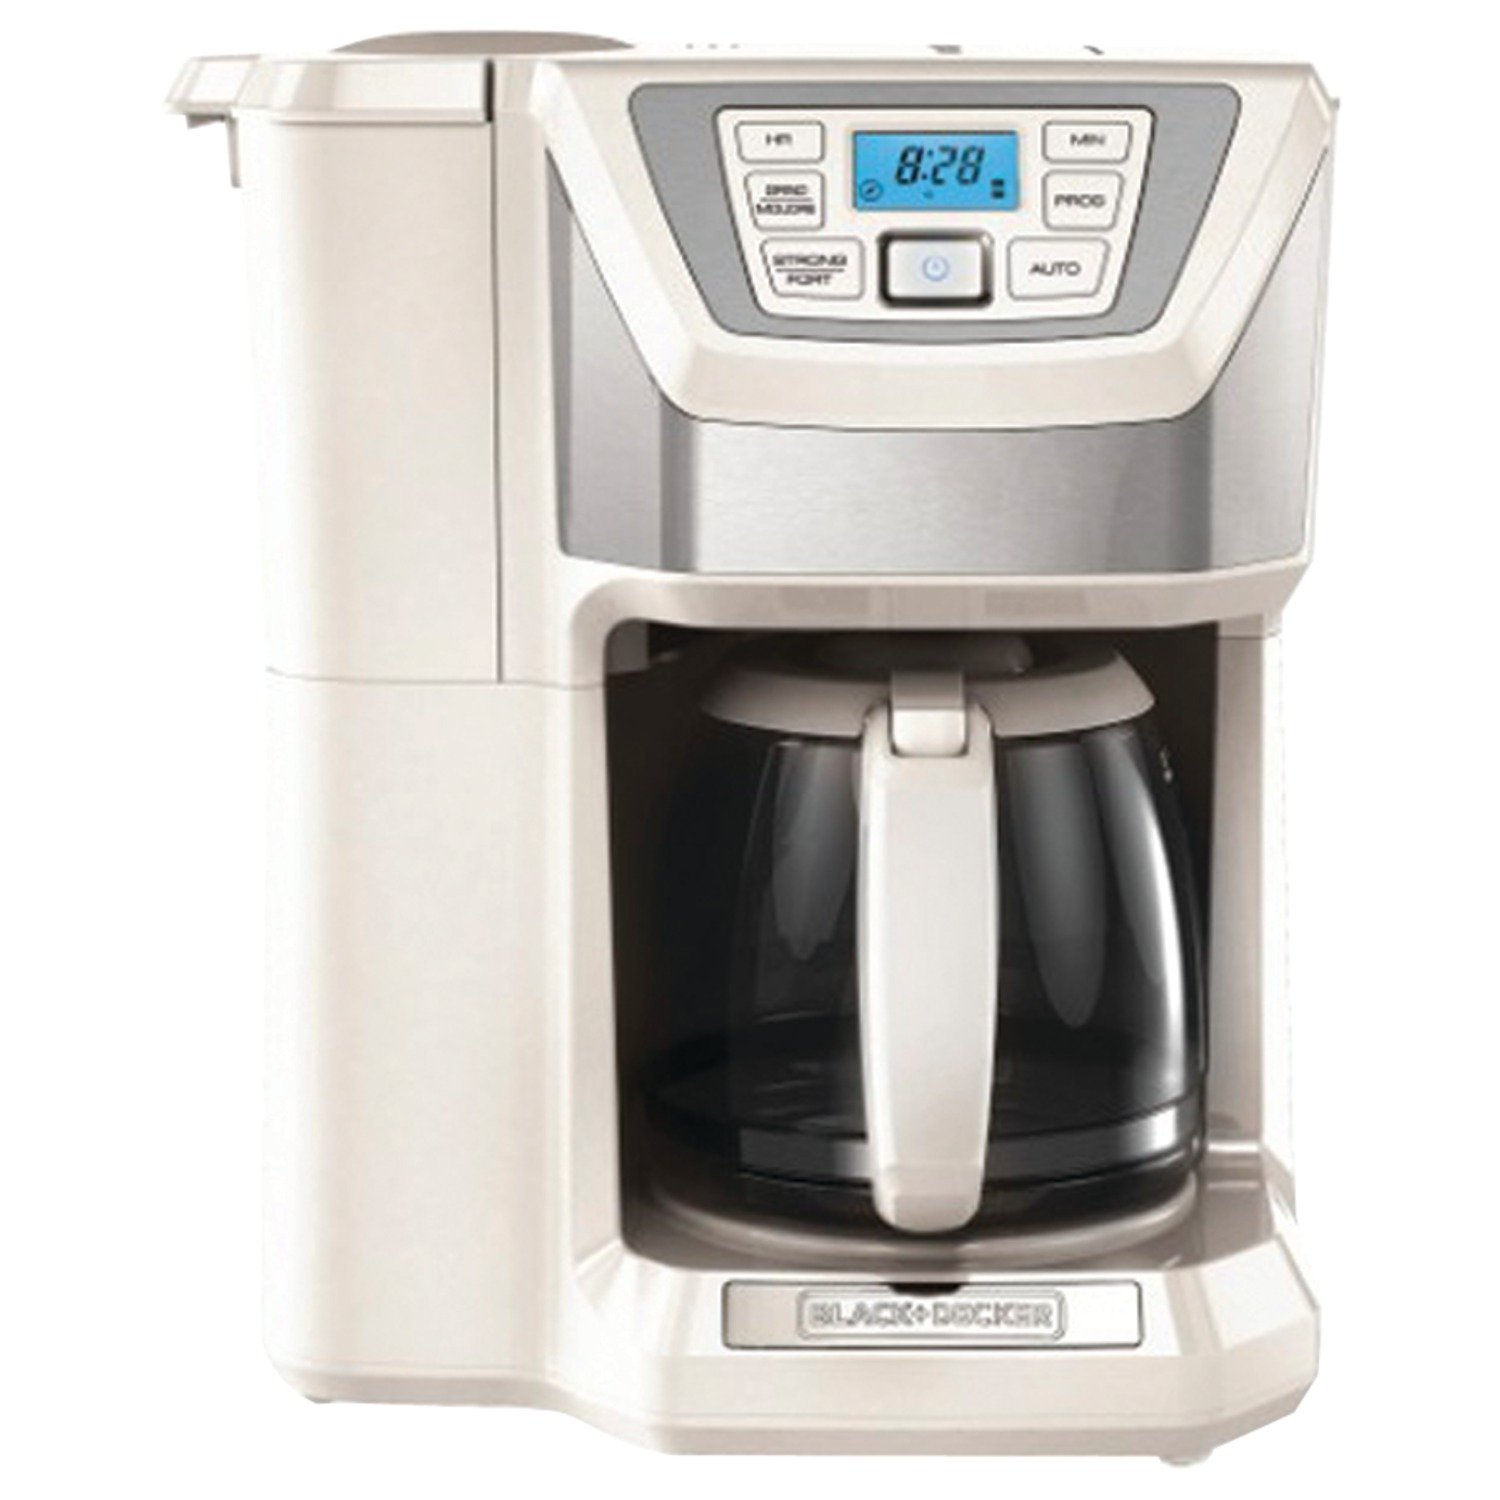 Black and decker coffee maker 12 cup programmable - Amazon Com Black Decker Cm5000wd 12 Cup Mill And Brew Coffeemaker White Silver Kitchen Dining